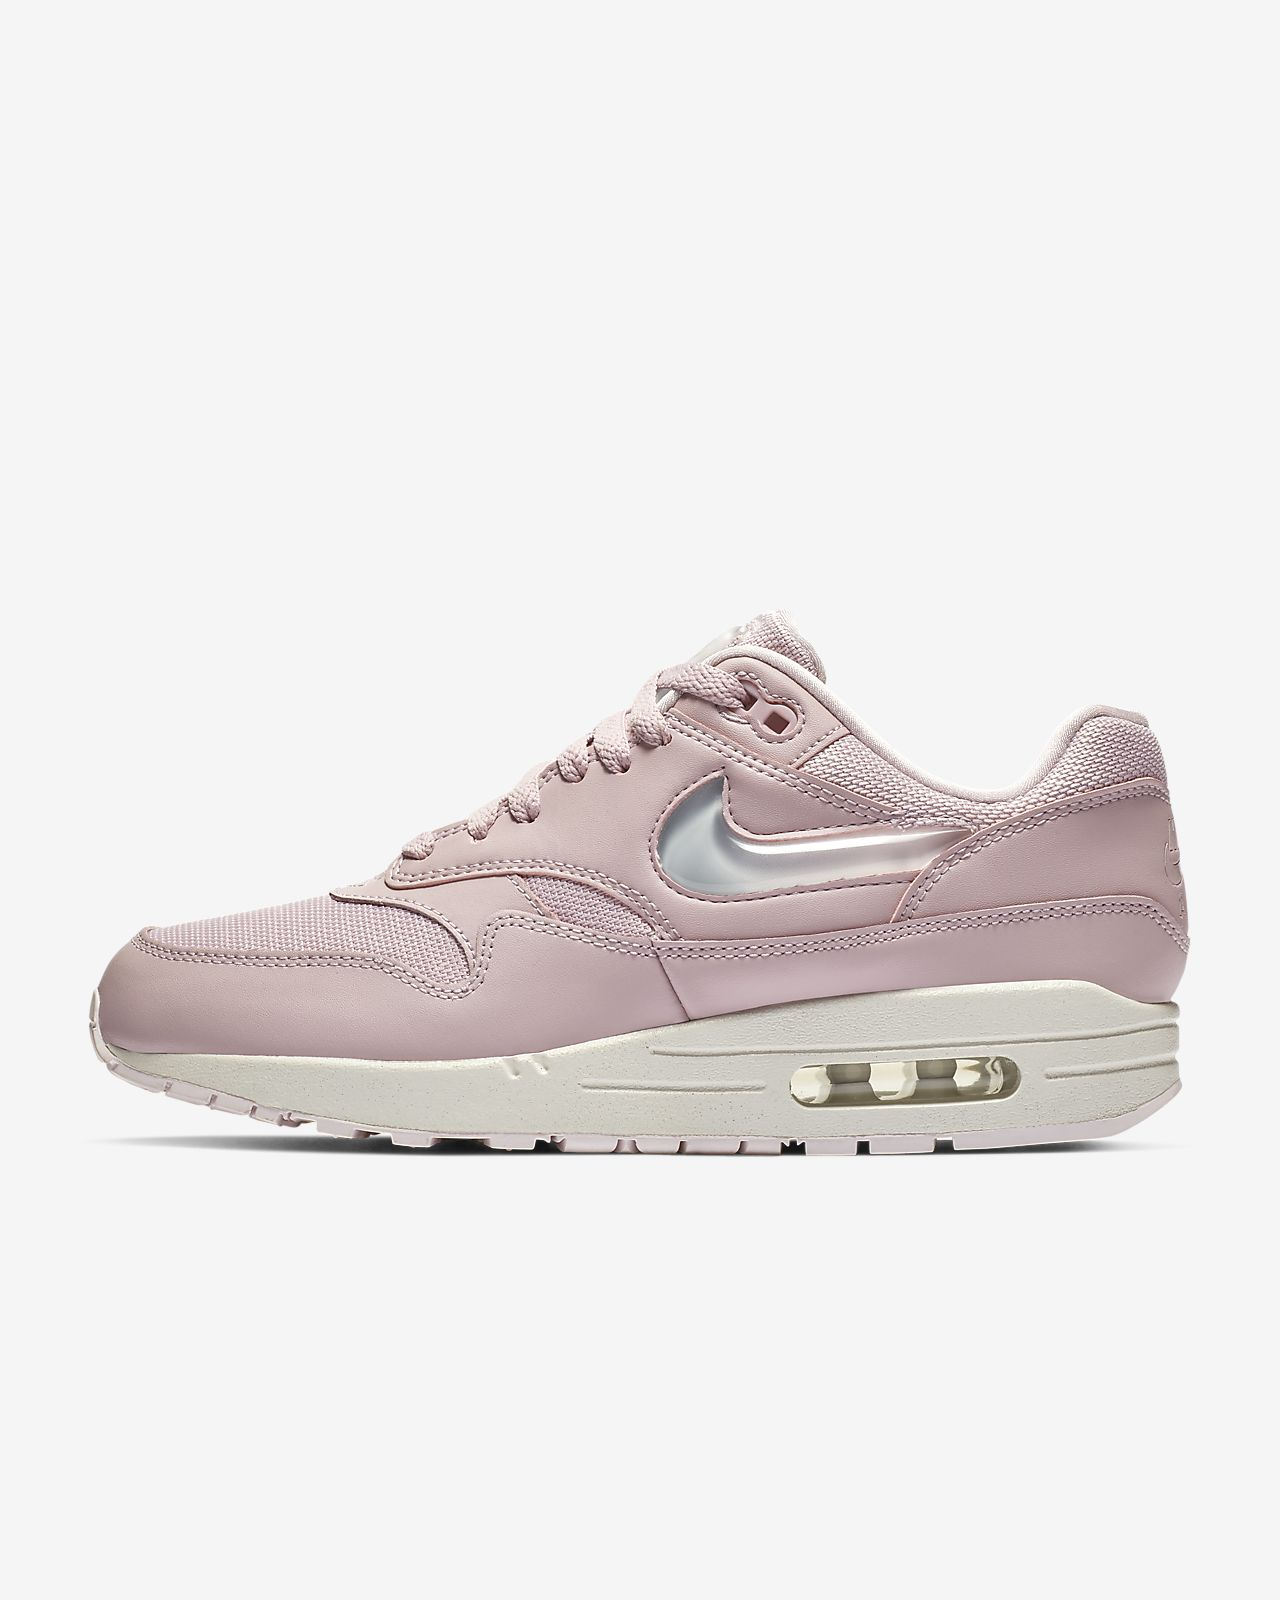 half off 5d3f6 84bb8 ... Nike Air Max 1 Premium Women s Shoe